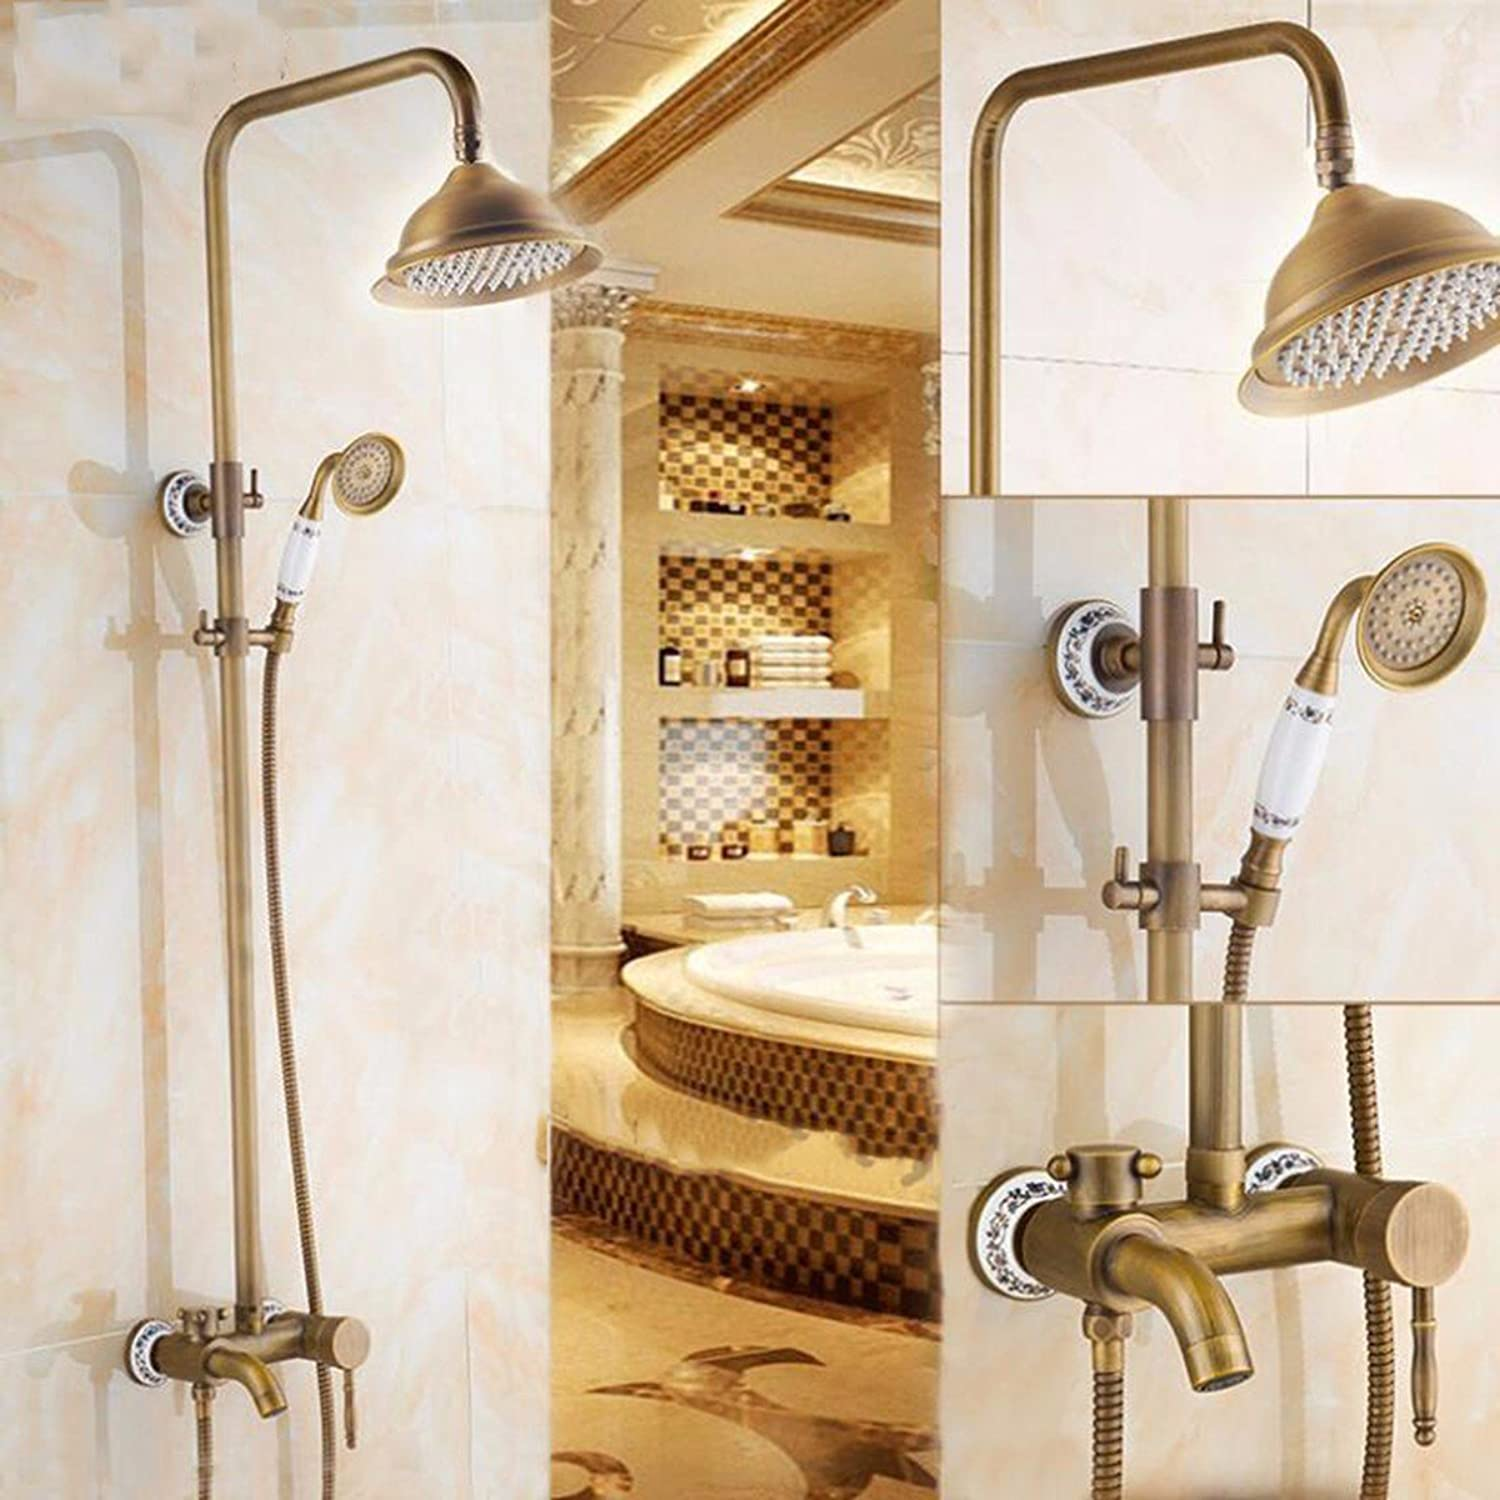 QPGGP-take a shower All copper retro shower shower set, European style pure copper antique shower with lifting cold and hot water bluee and white water faucet.